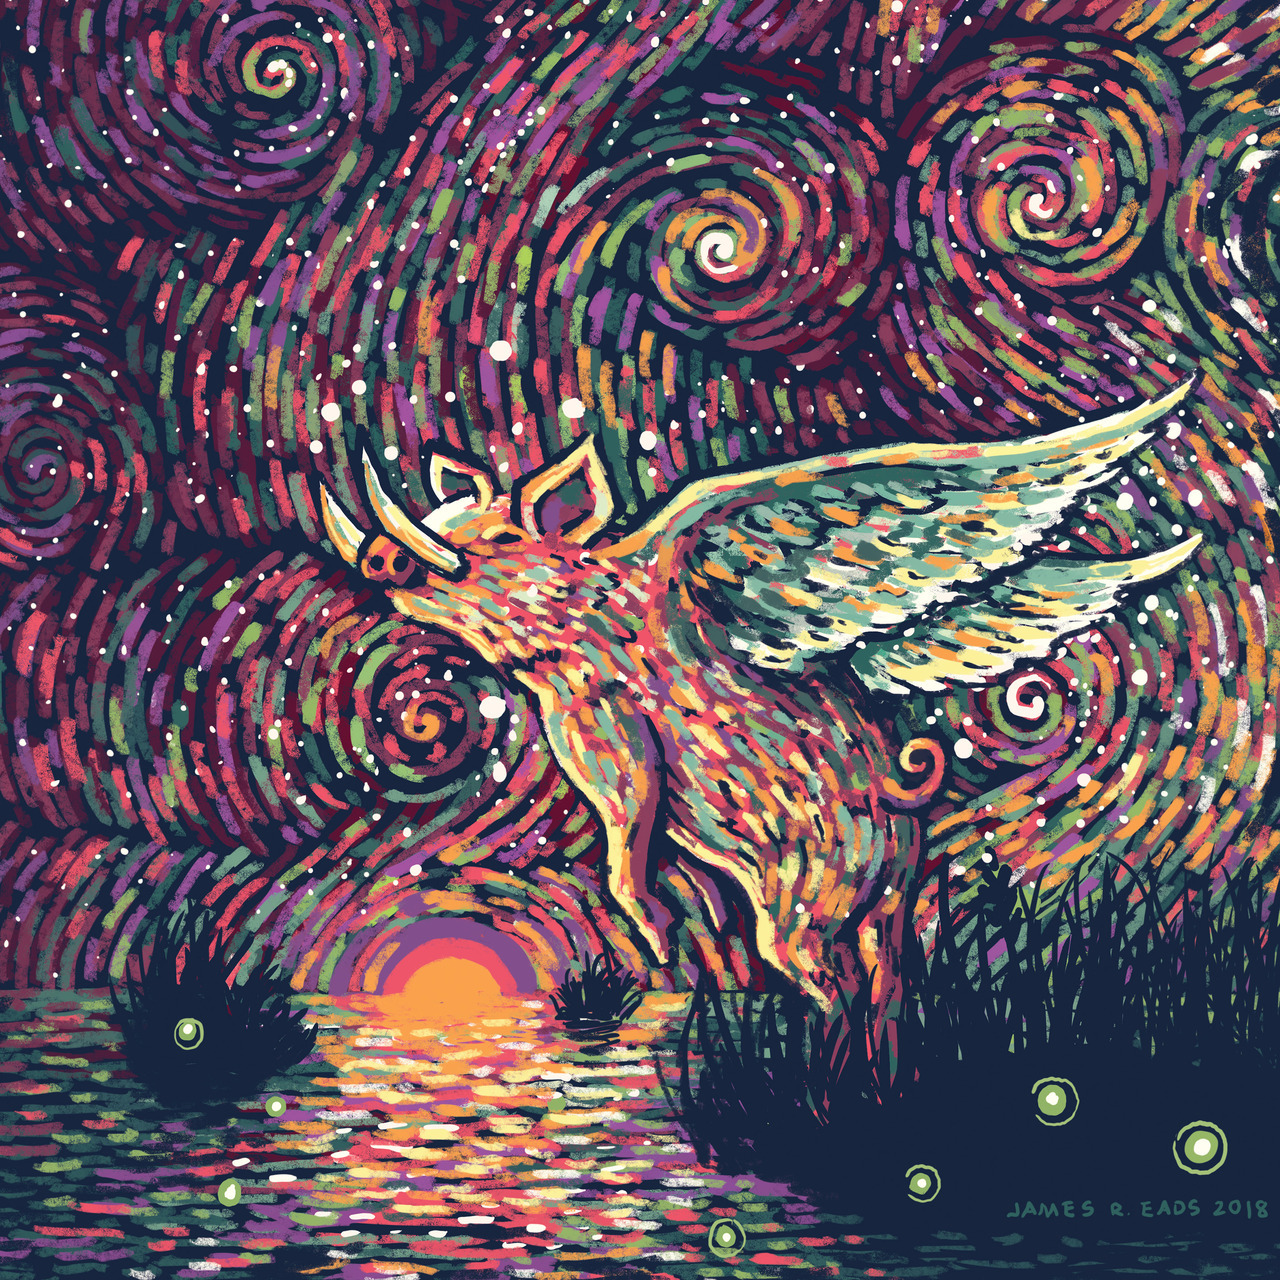 JAMES R  EADS - the winged boar might look pretty ugly on the